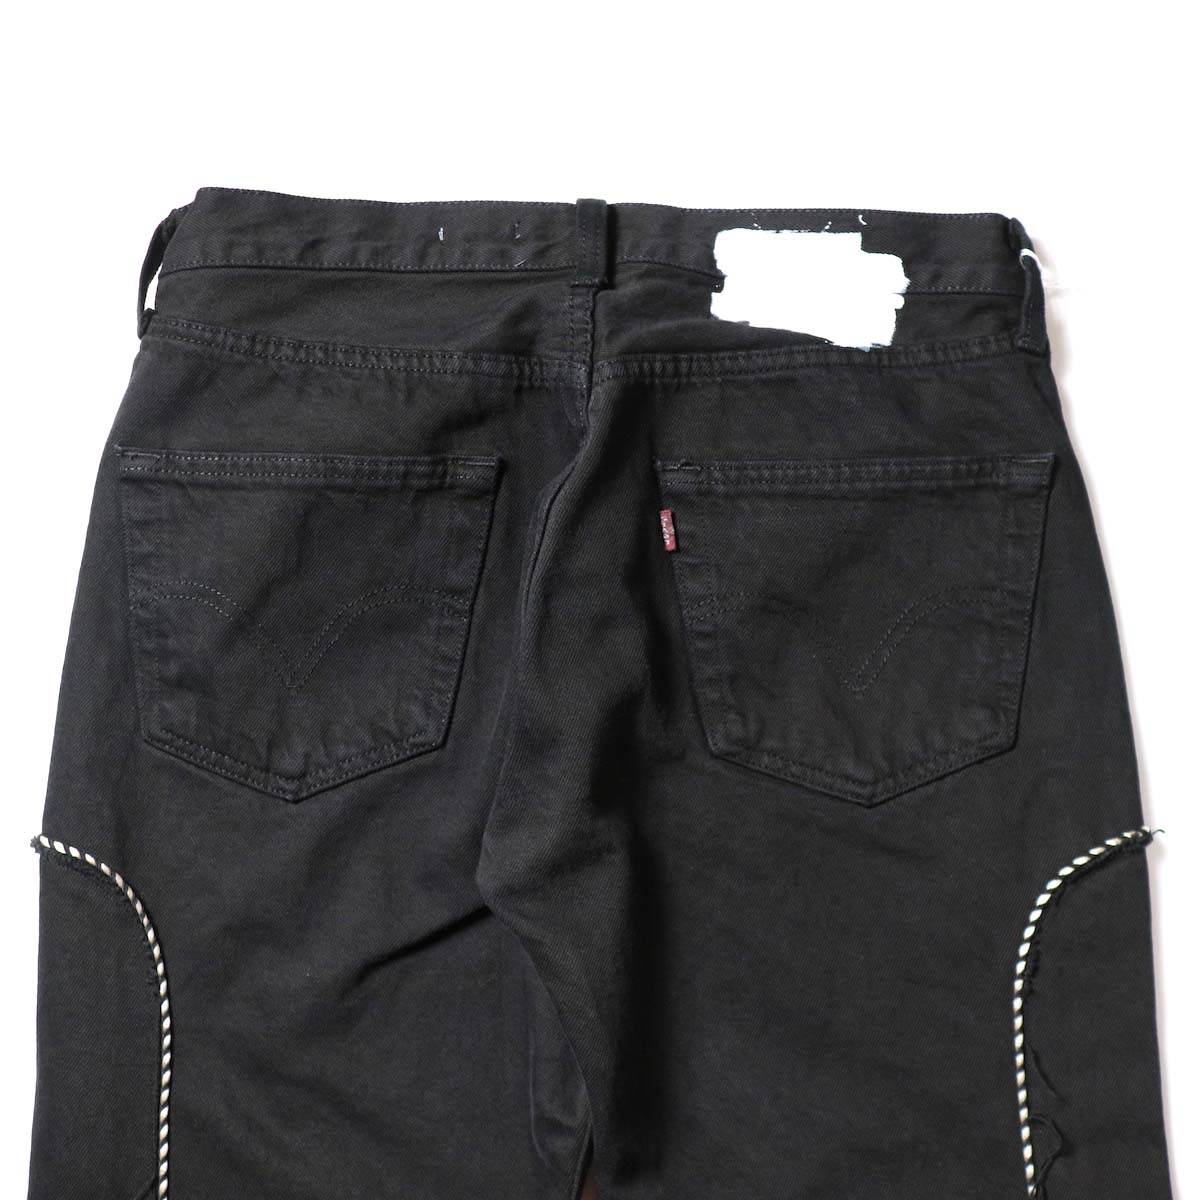 OLD PARK / Western Jeans Black (Msize-E)ヒップポケット